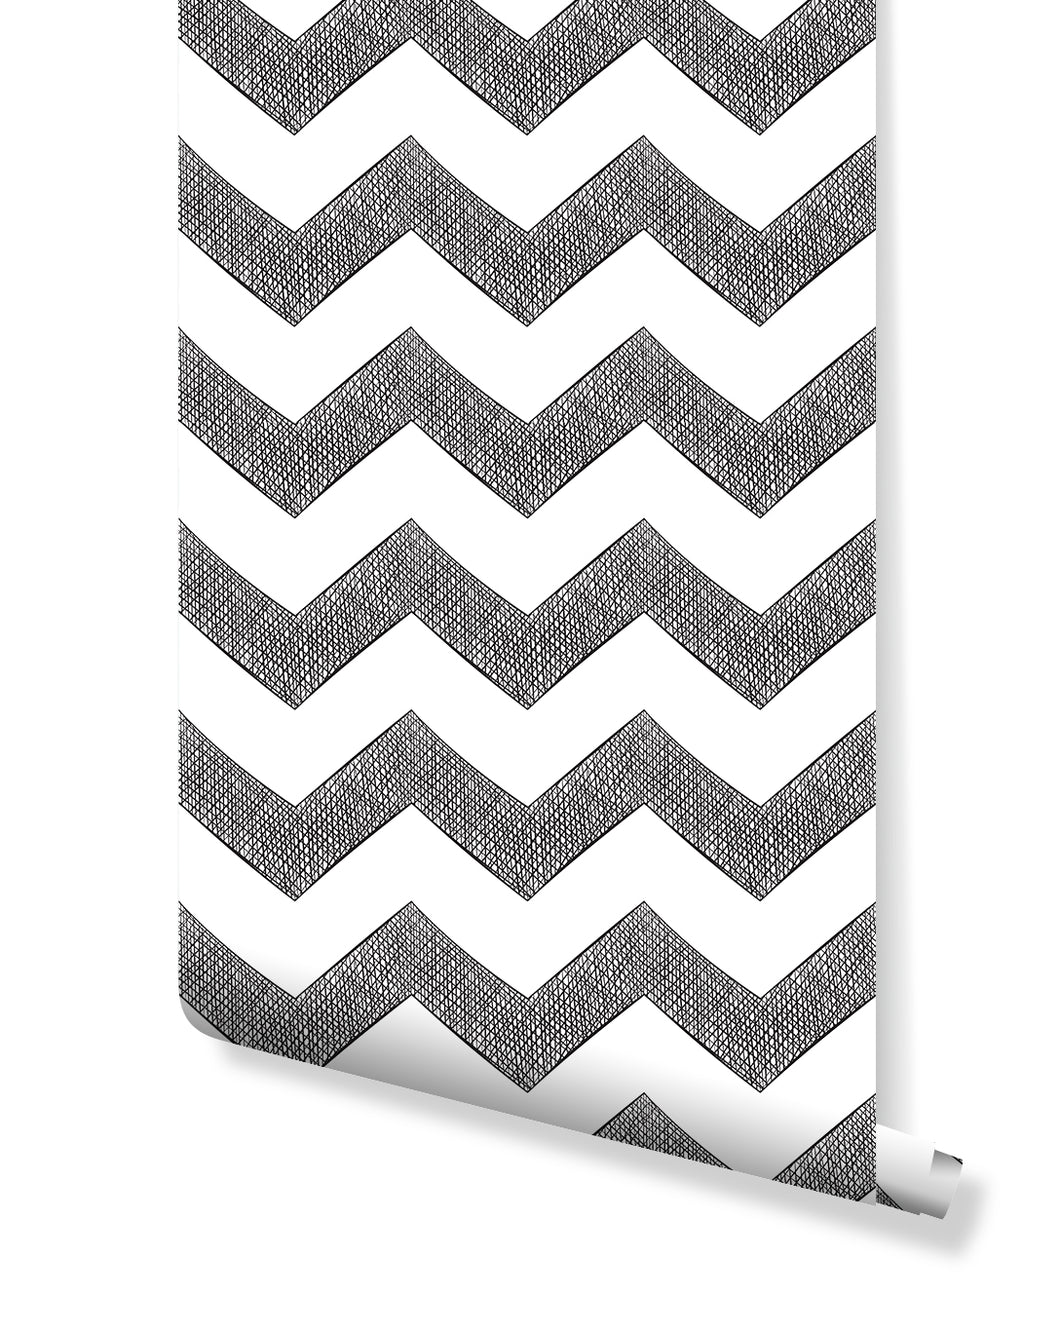 Removable Temporary Wallpaper Classic Hand Drawn Chevron Black and White Zigzag Self Adhesive Vinyl Peel and Stick application CC097